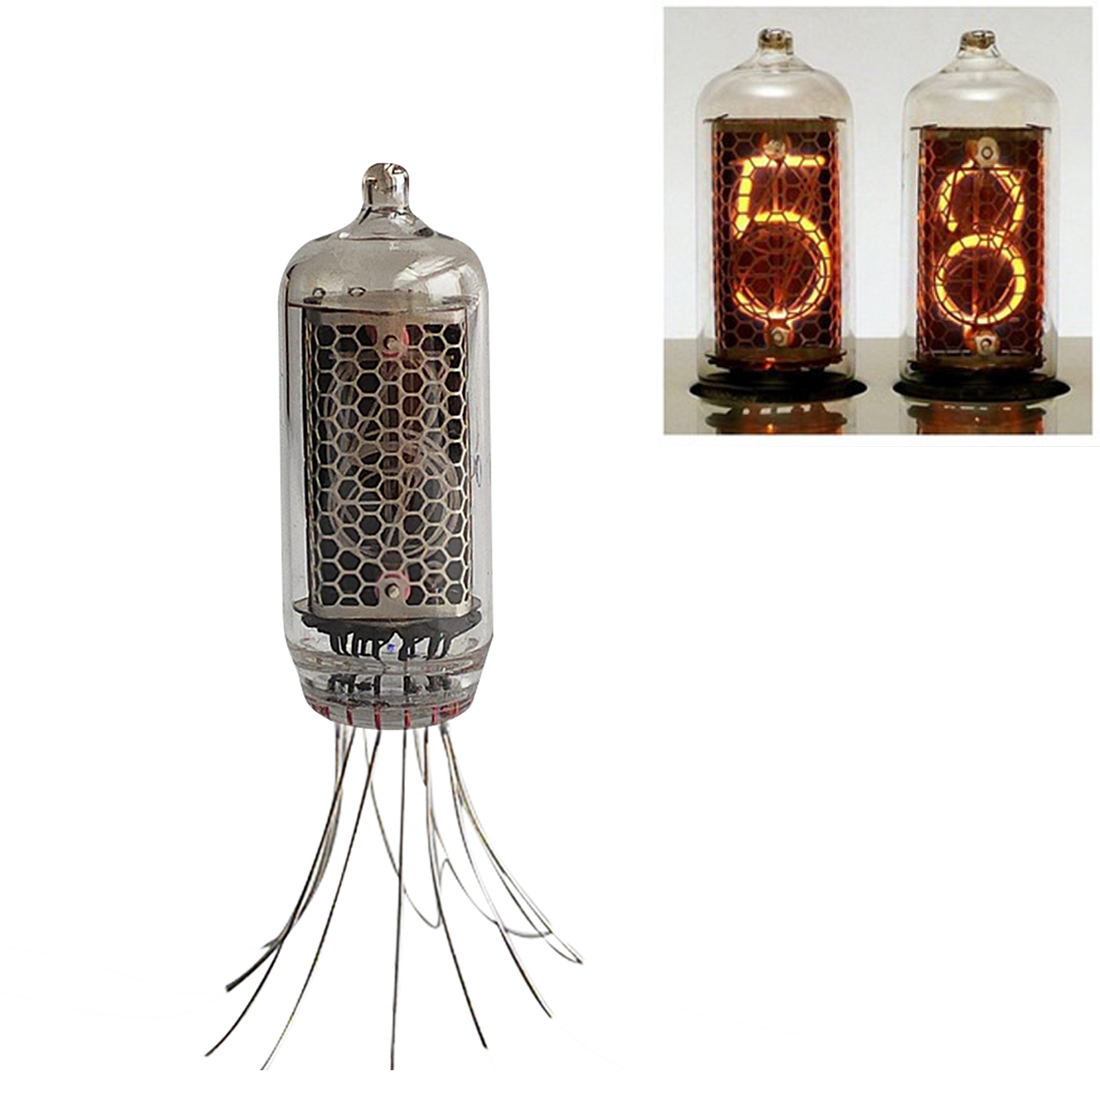 DIY Electronic Vacuum Tube IN-8-2 Glow Tube For Glow Tube Clock Base For Children Kids Developmental Early Educational Toys Gift